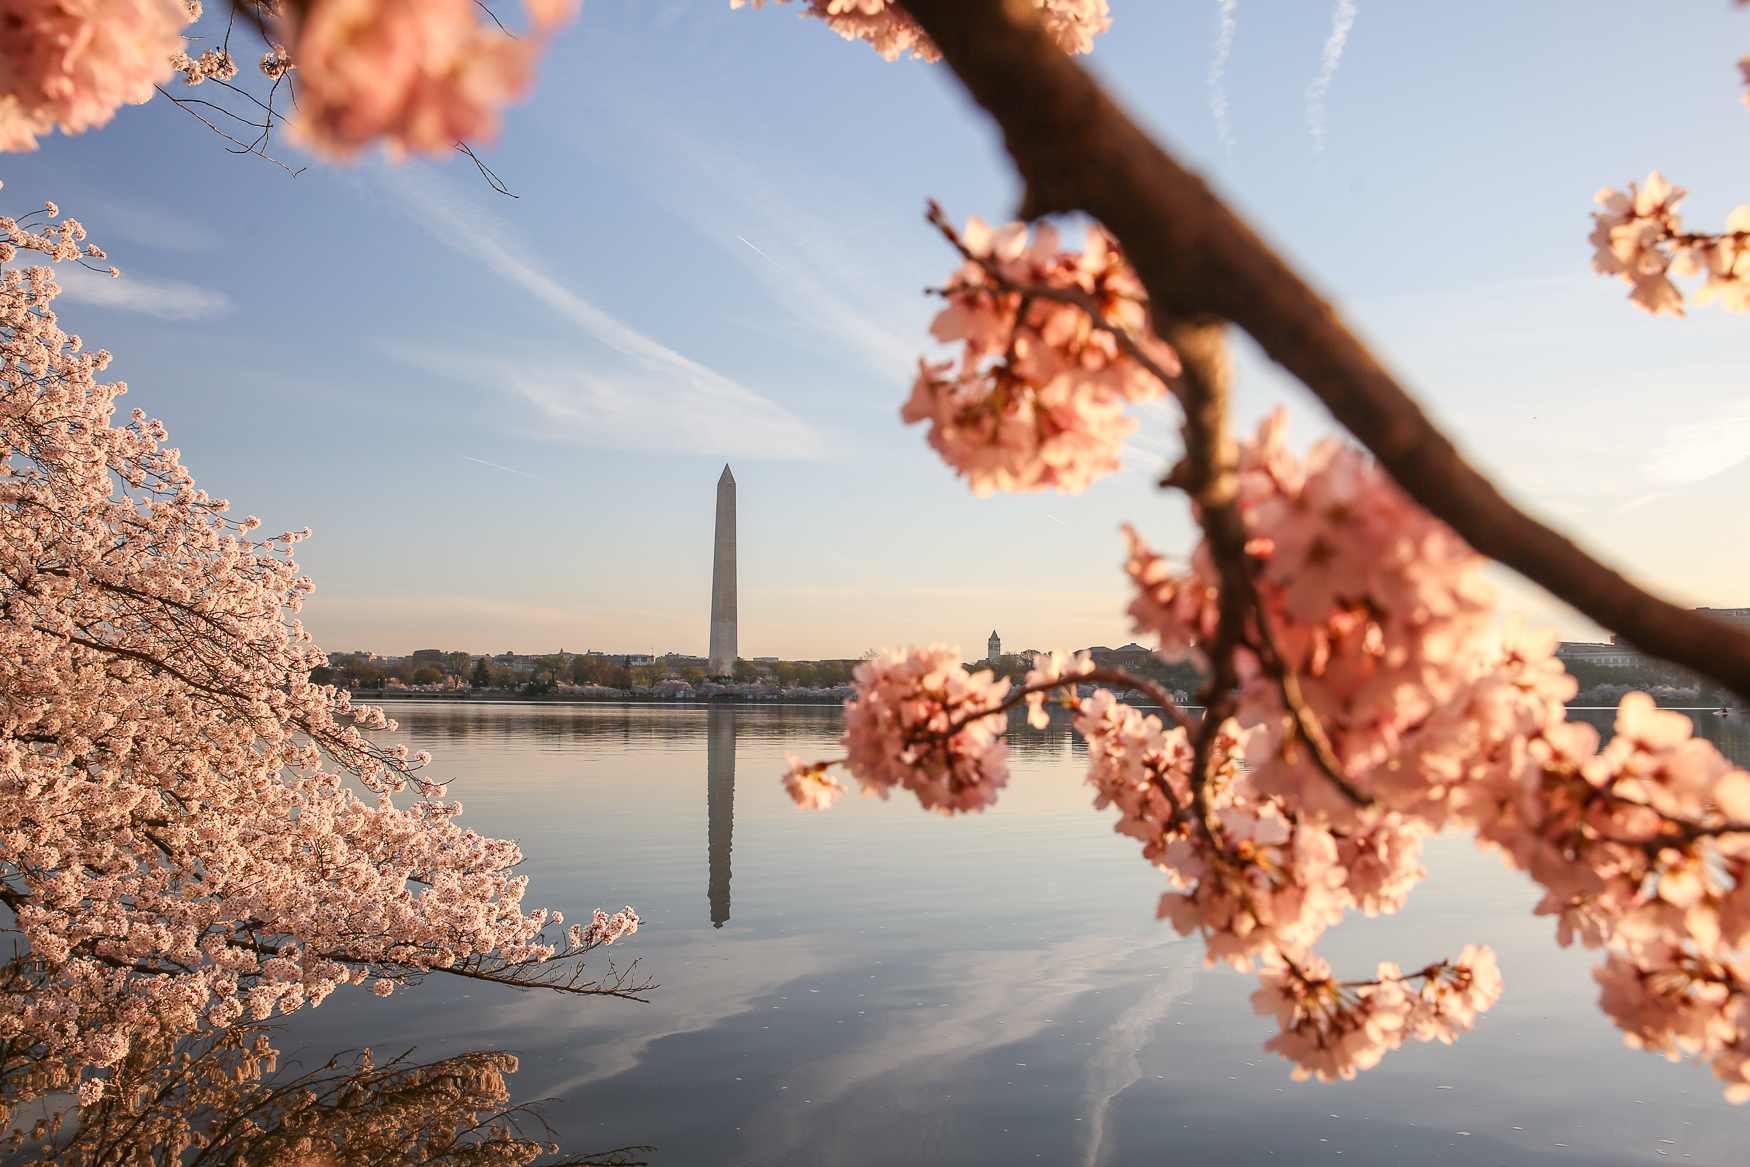 Fun fact! The Washington Monument weighs{ }81,120 tons.